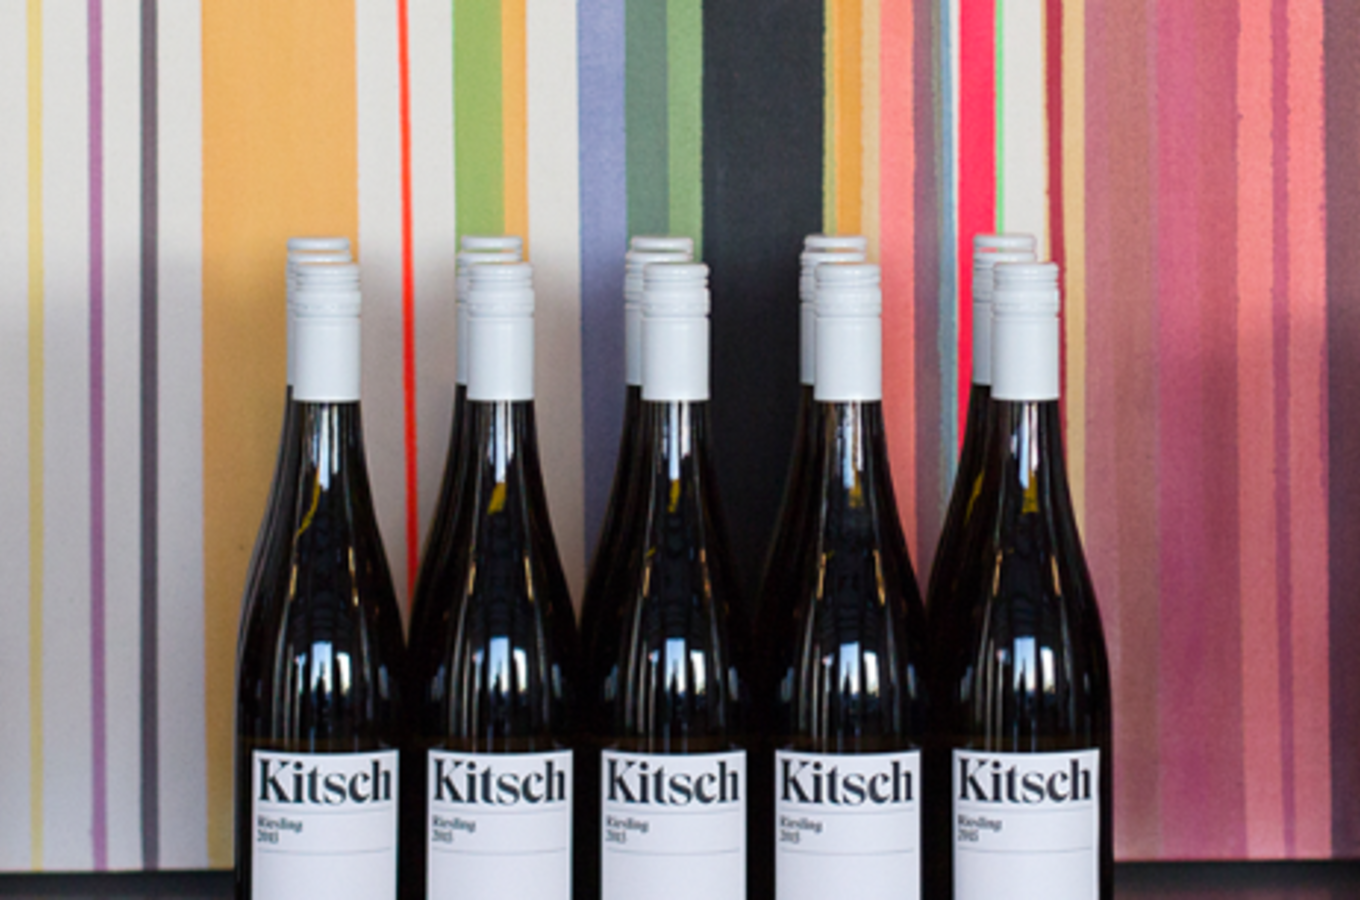 Kitsch Wine Bottles